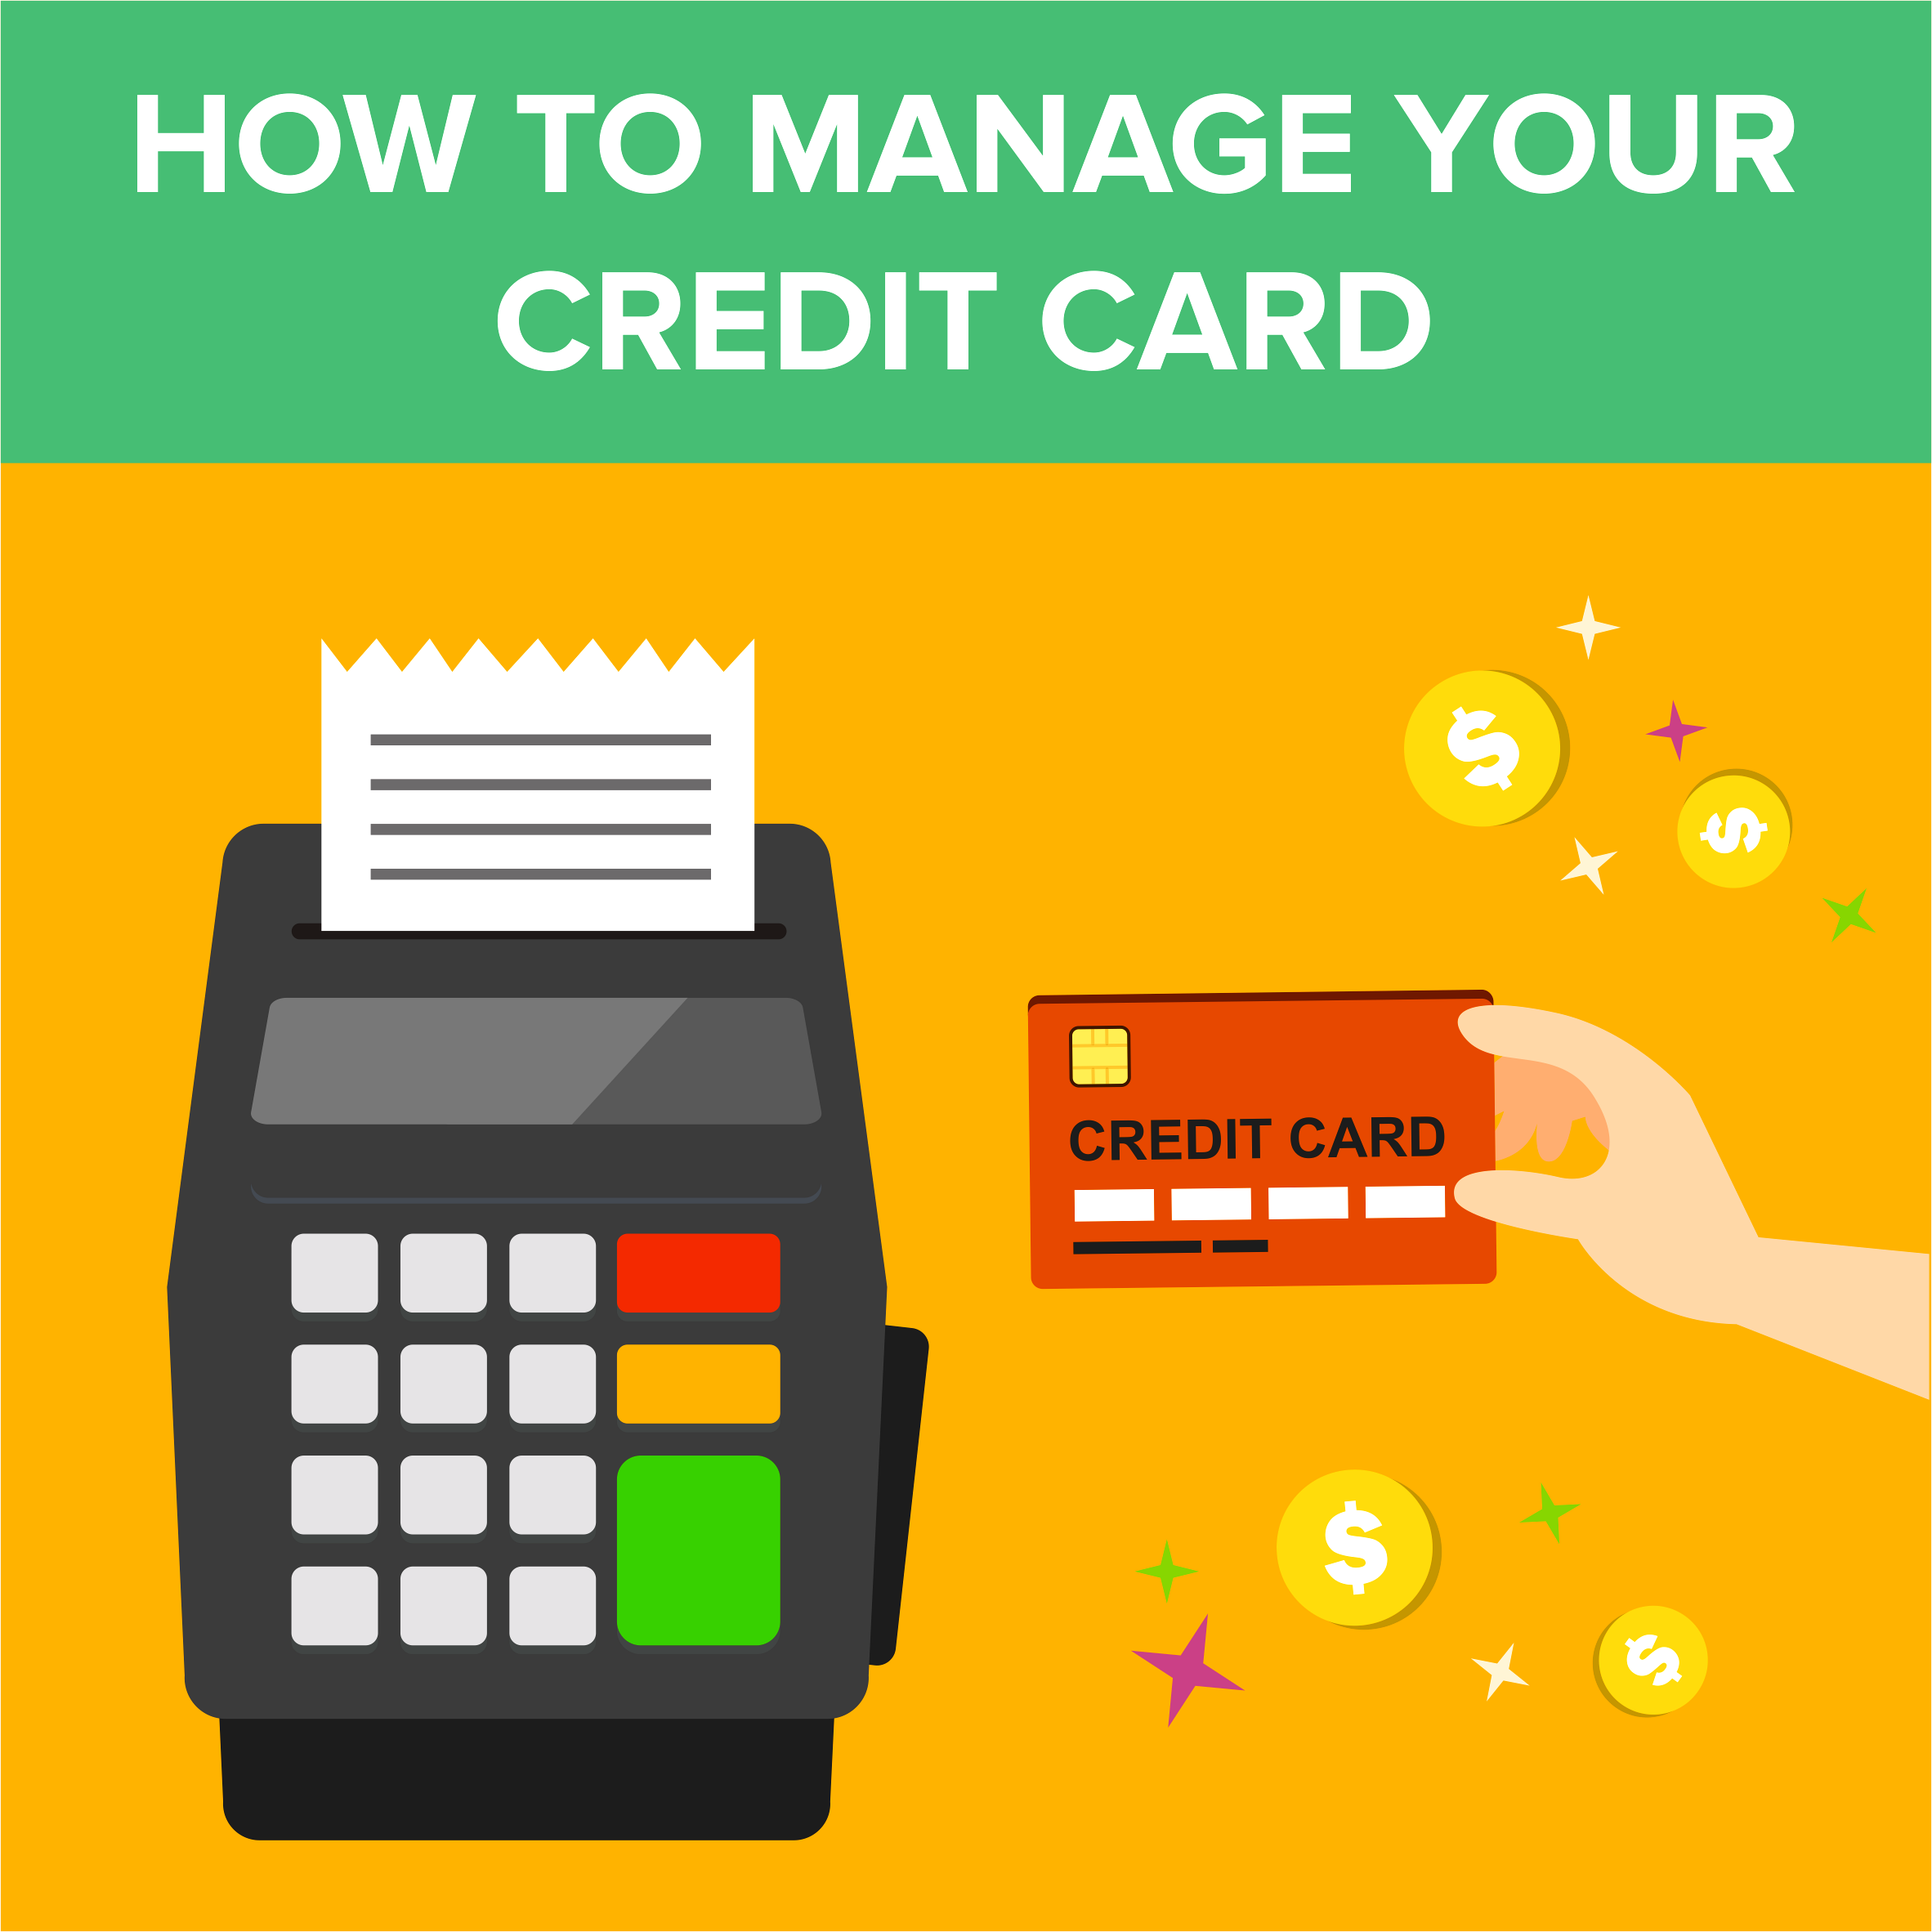 How to Manage Your Credit Card